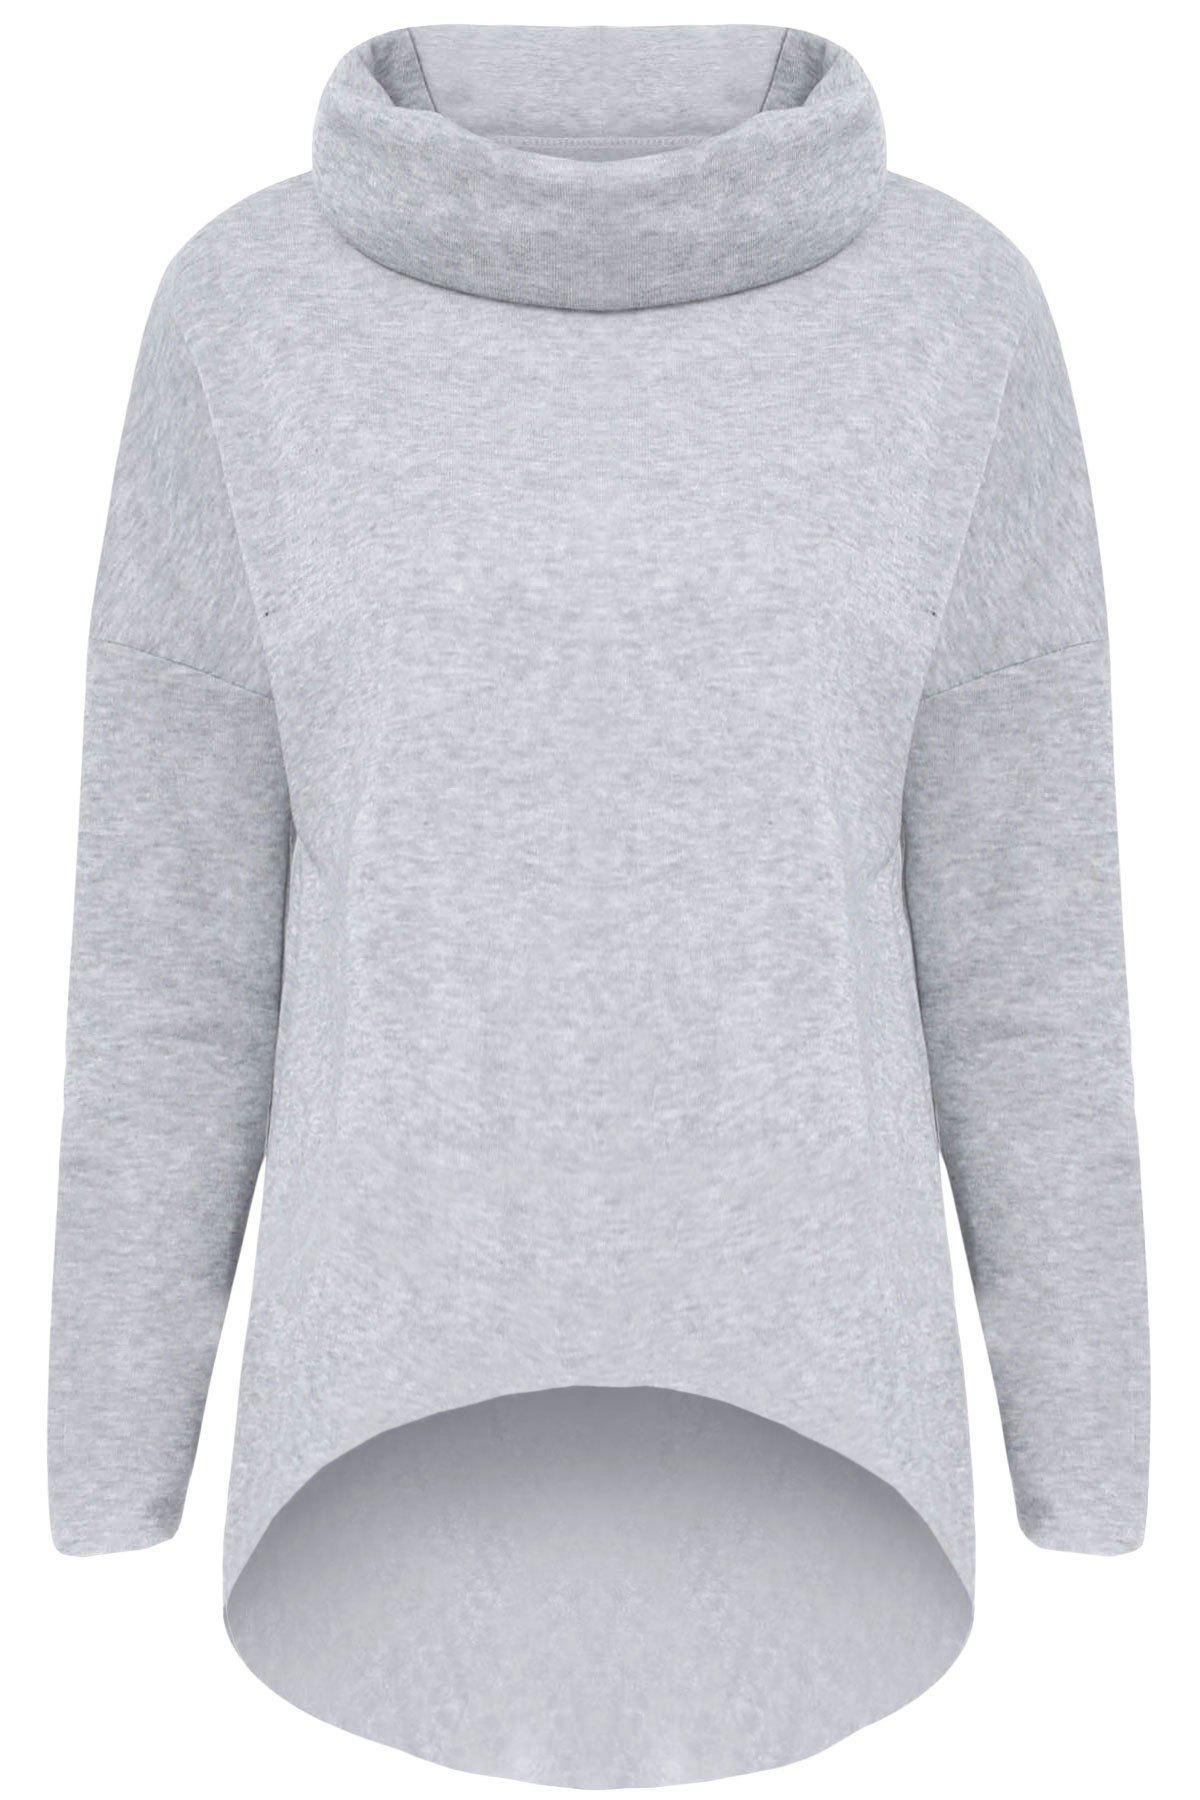 Buy Drop Shoulder Pullover Sweatshirt